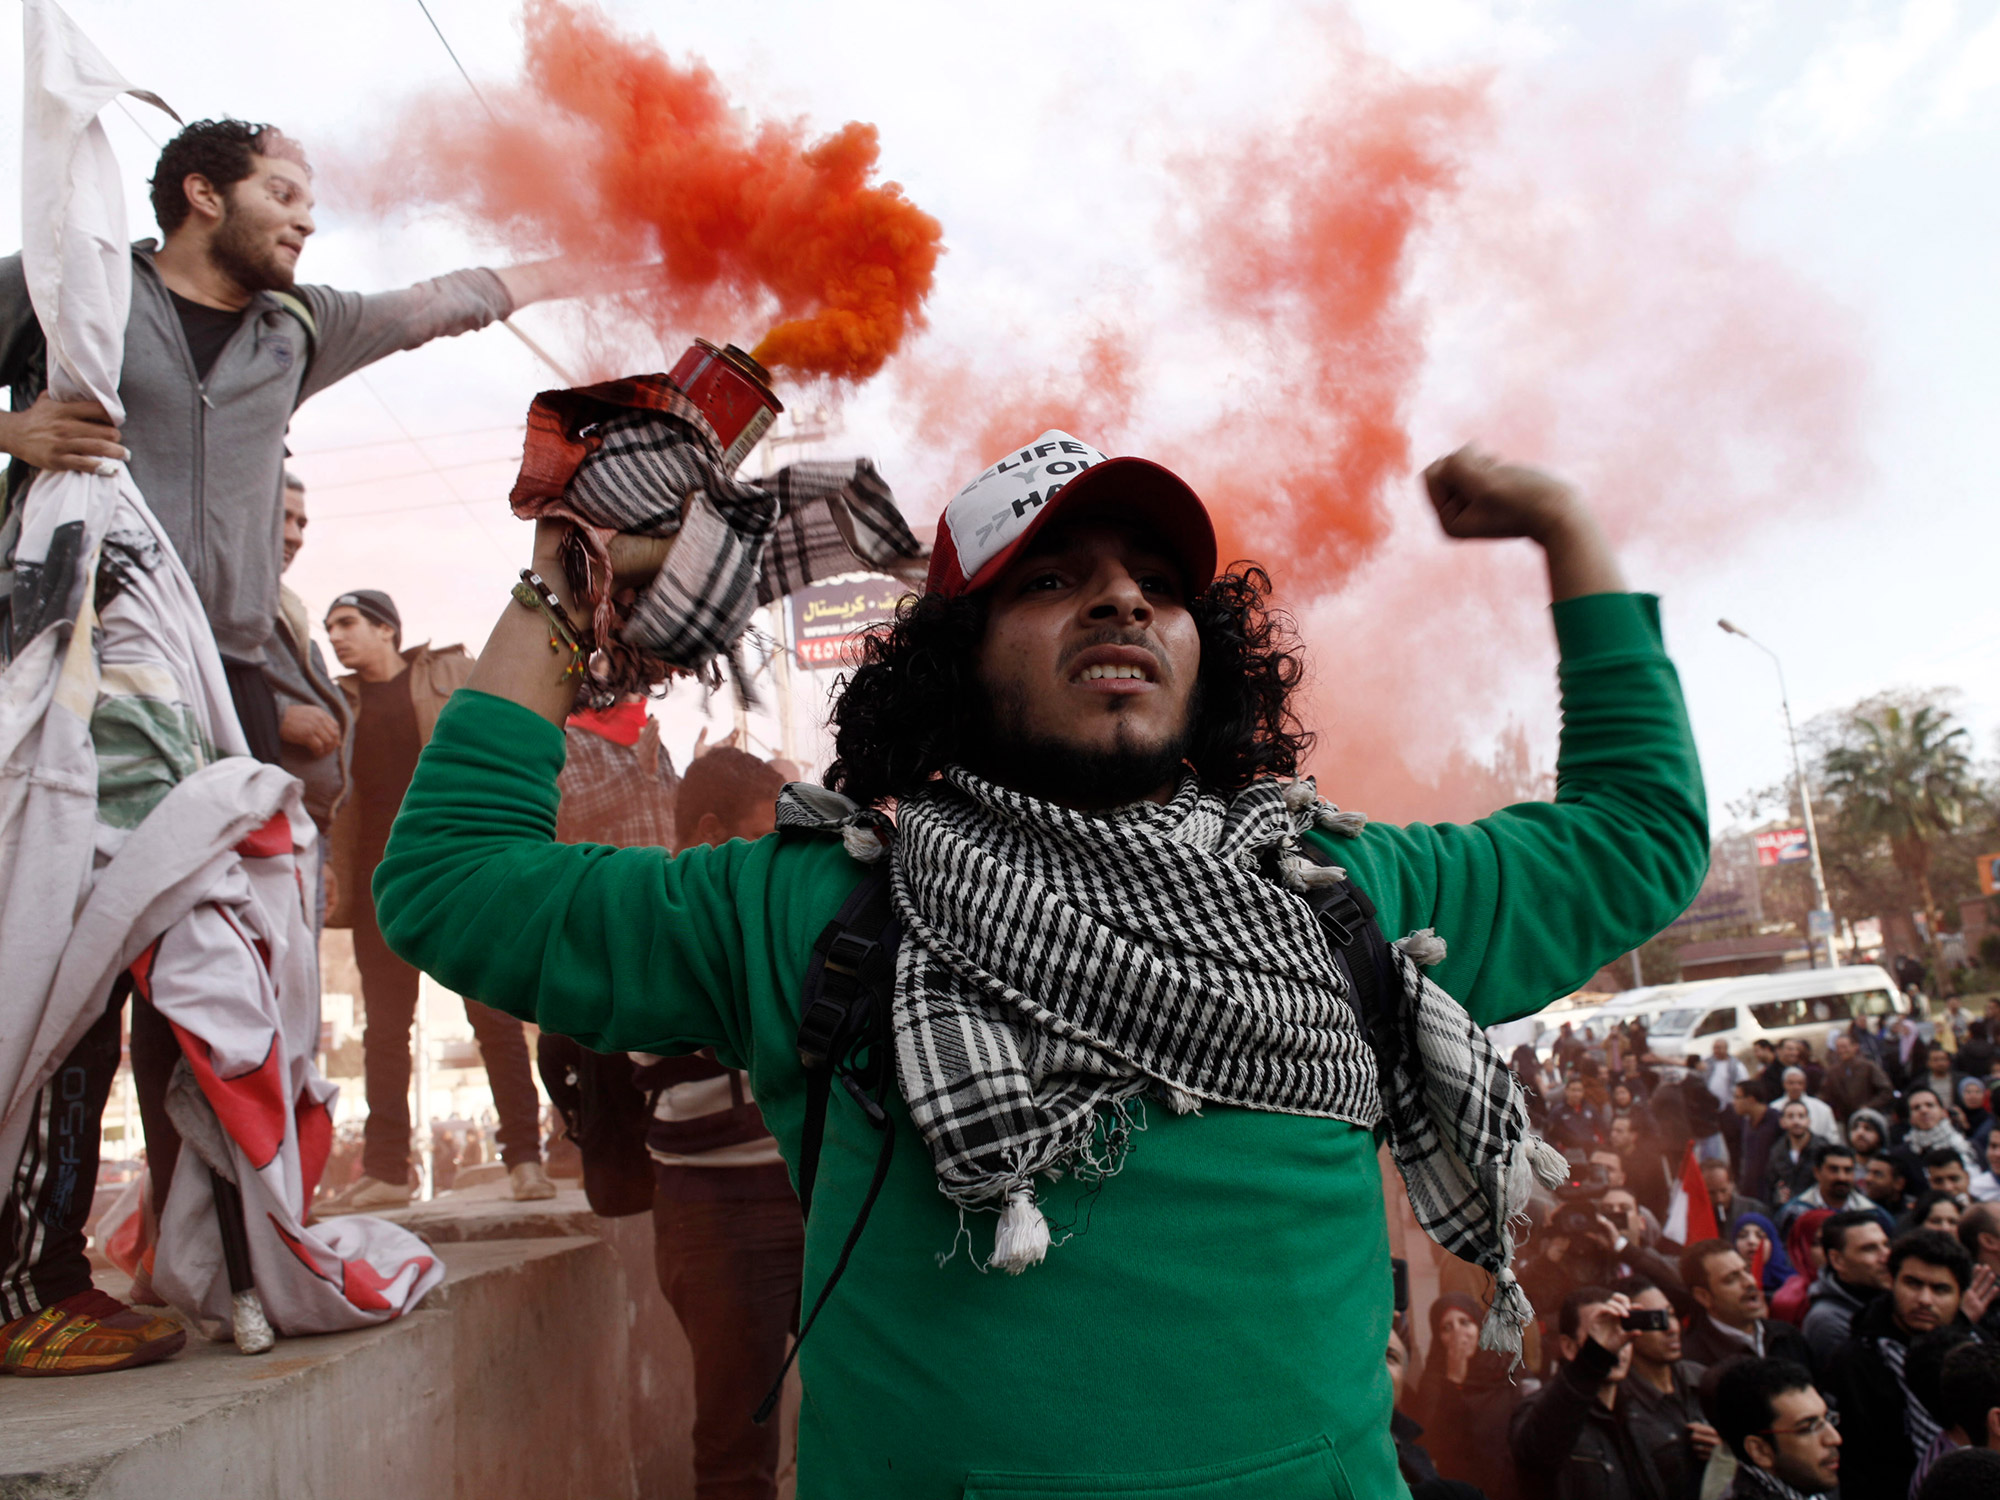 Licking wounds of the Arab Spring